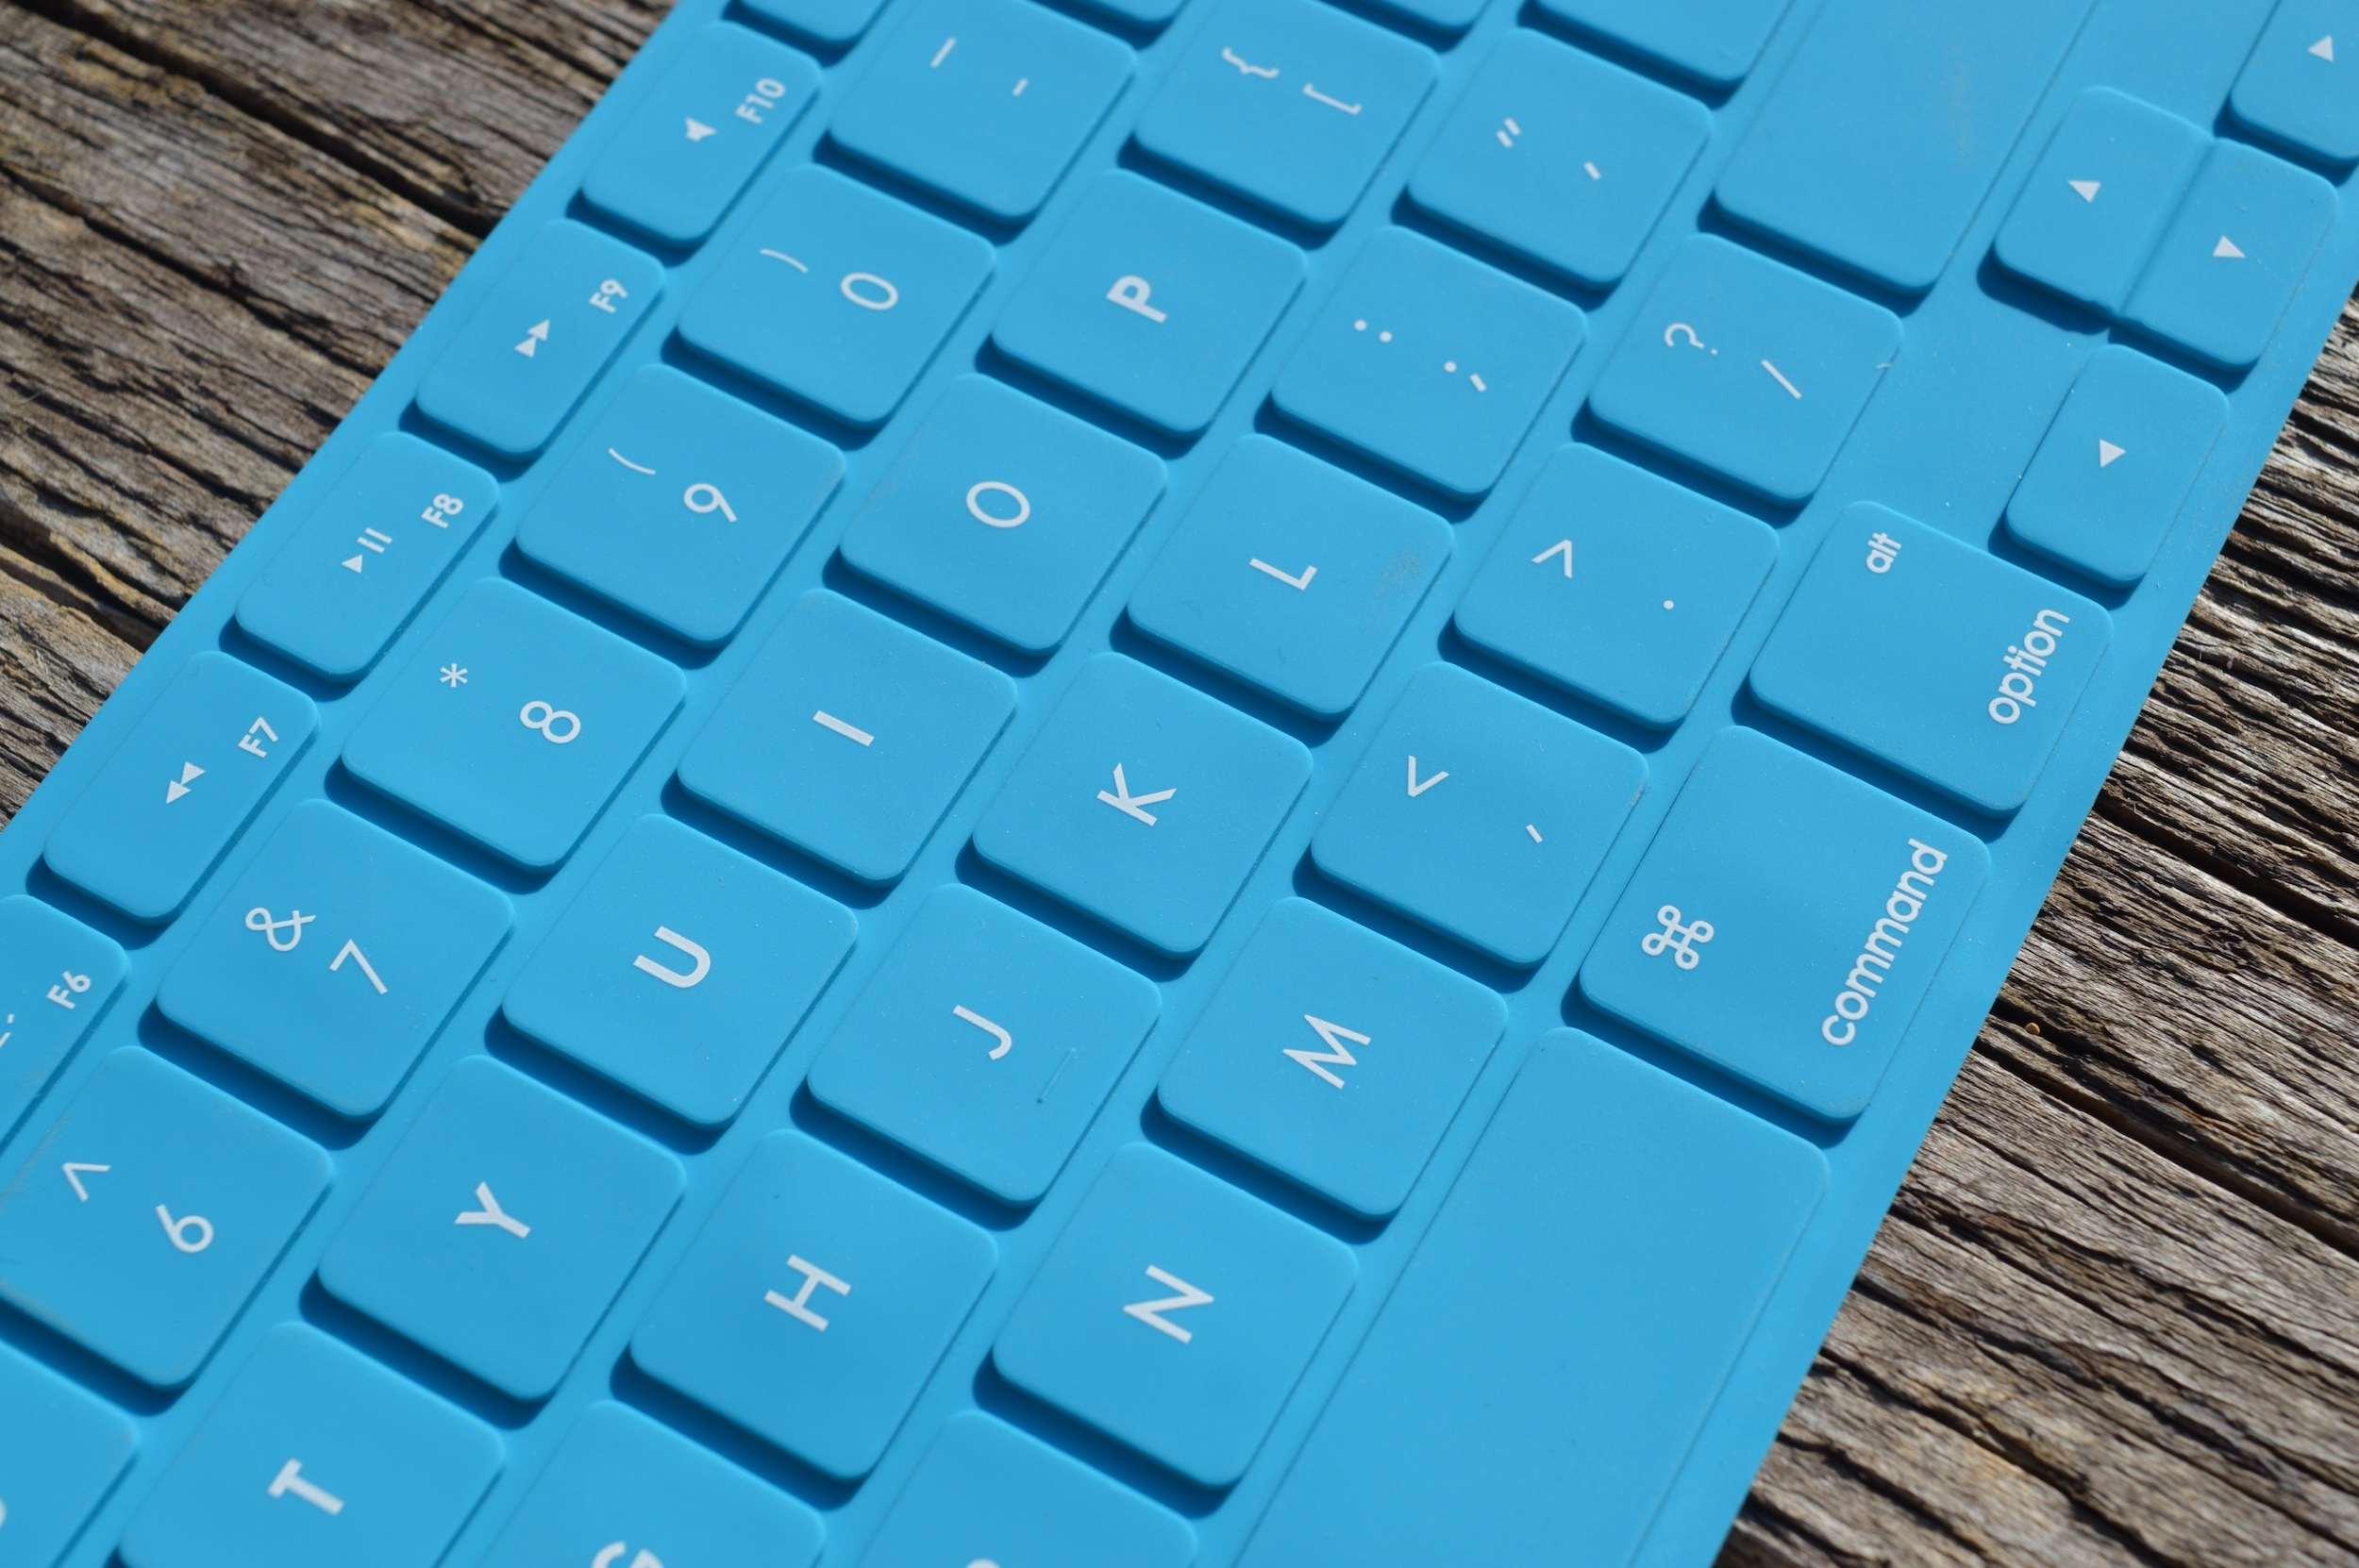 Blue keyboard for Microsoft surface computer